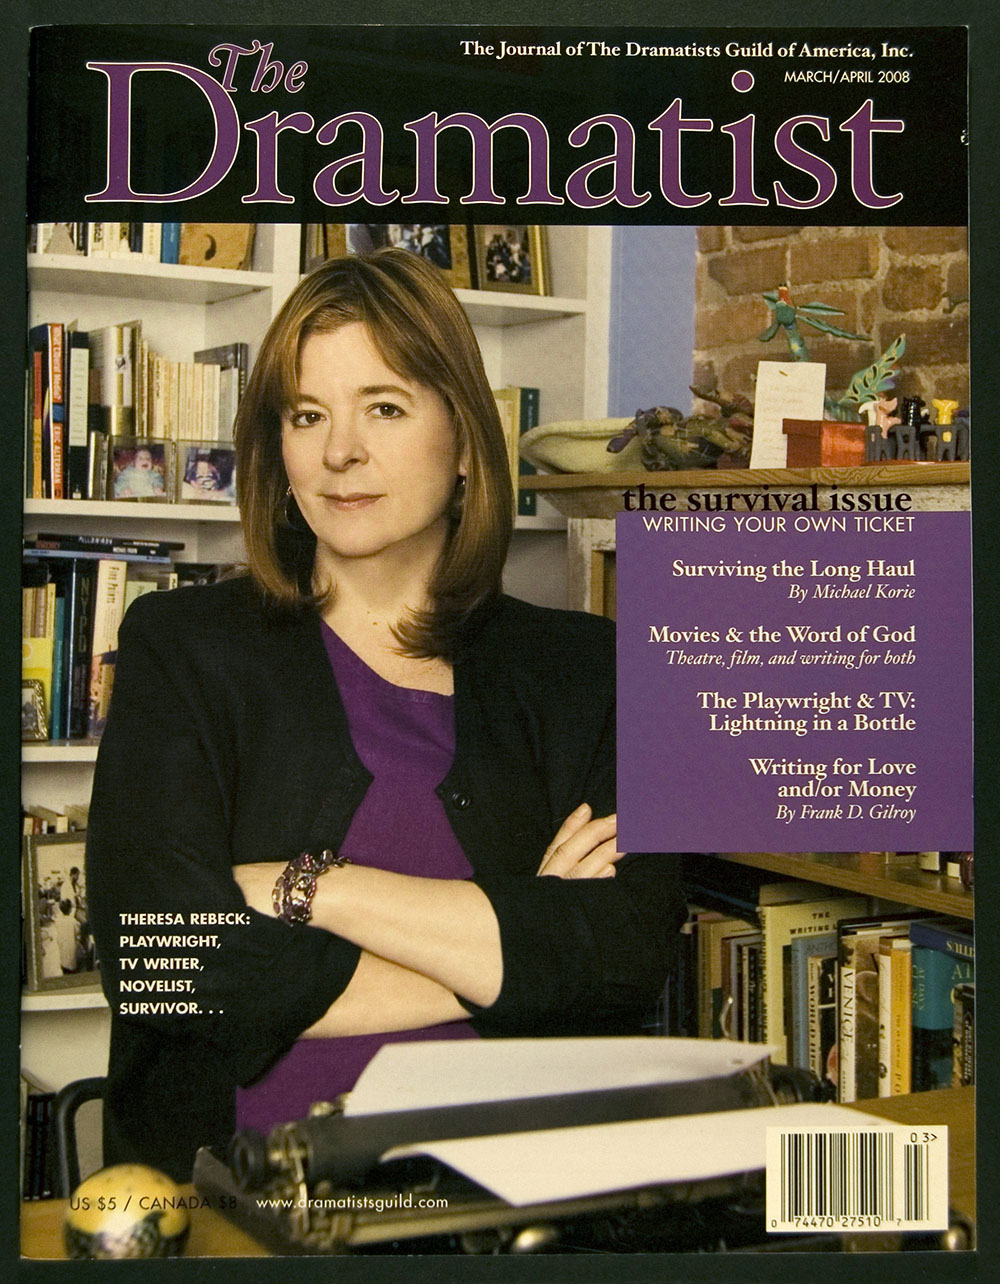 The Dramatist: the Journal of the Dramatists Guild of America, March/April 2008